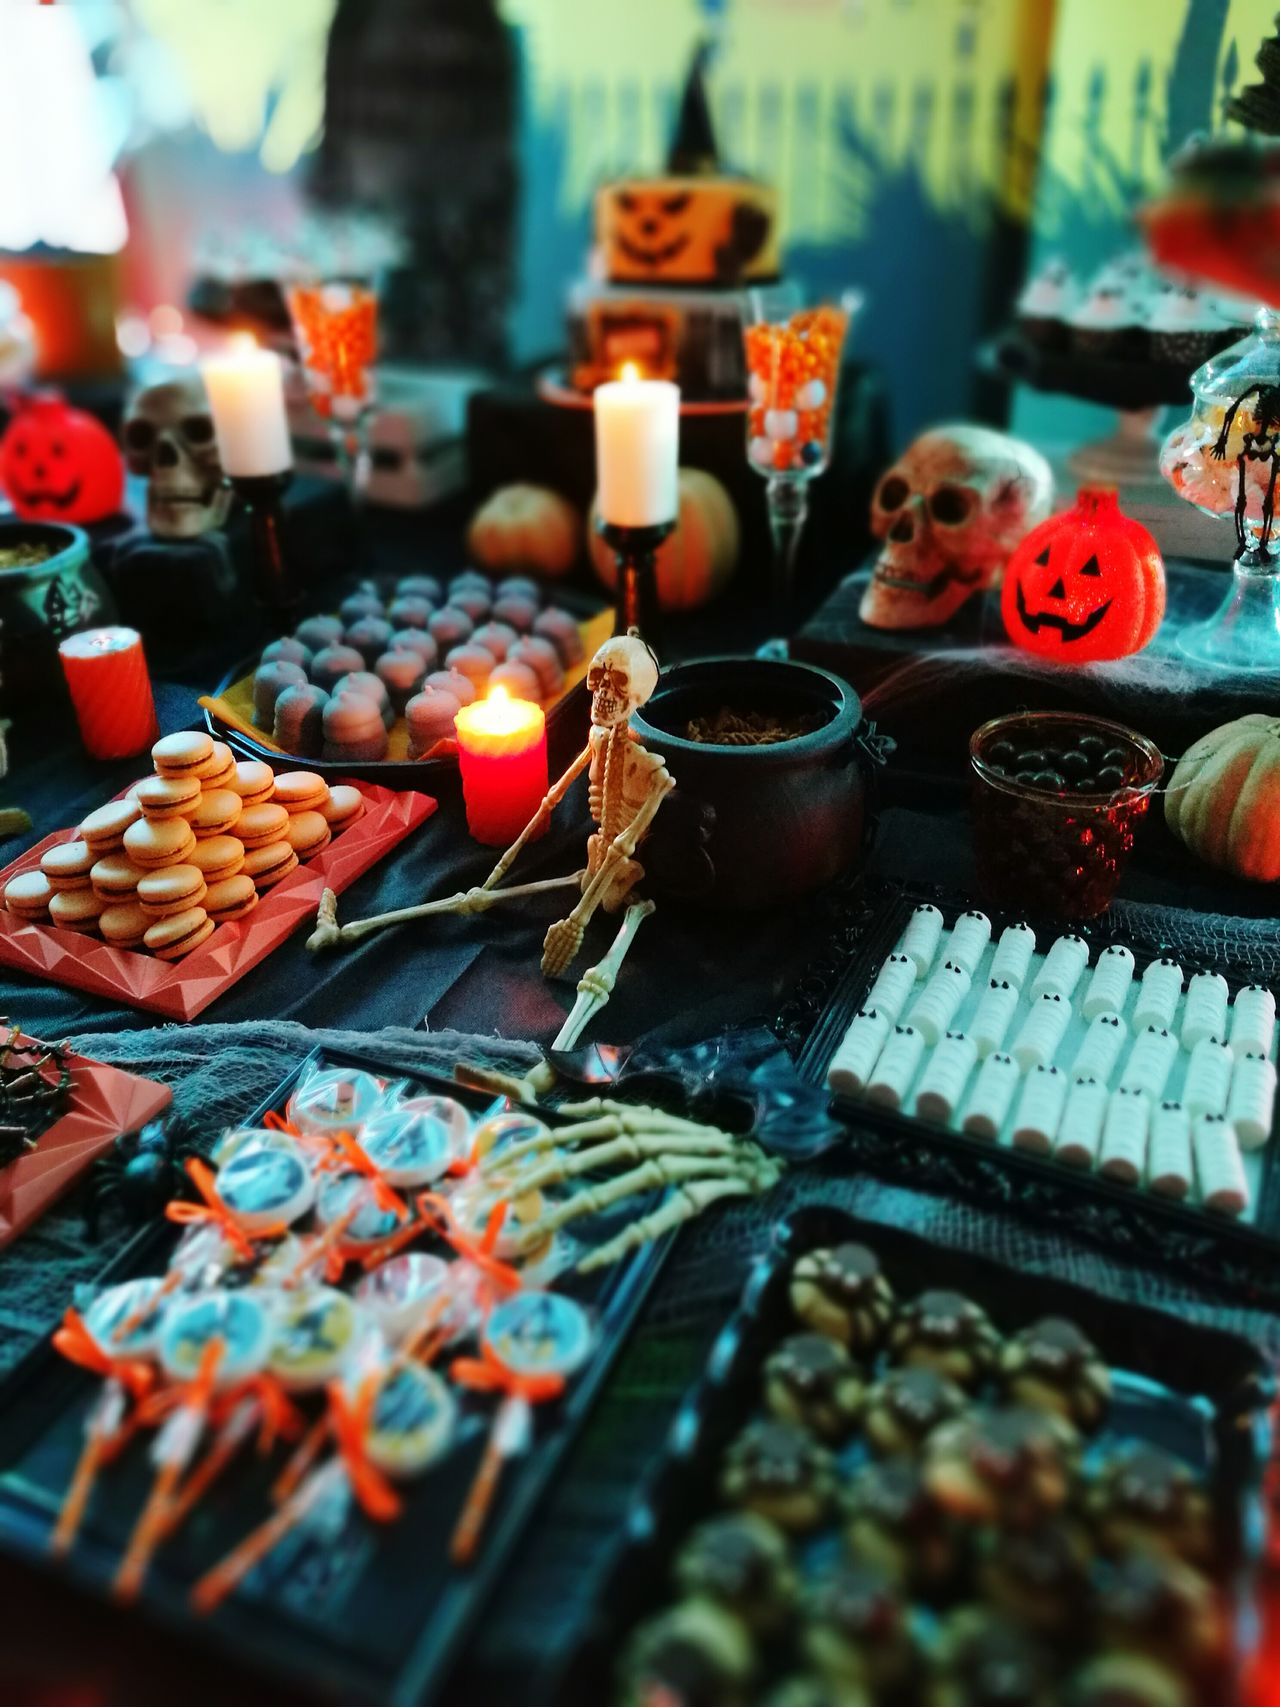 Halloween In My Work, Do What I Love ❤️💥❤️... In My Work Work Working Sweet Food Candies! Candies Everwhere  Business Finance And Industry No People Indoors  Choice Market Multi Colored Day Close-up Food Art Is Everywhere